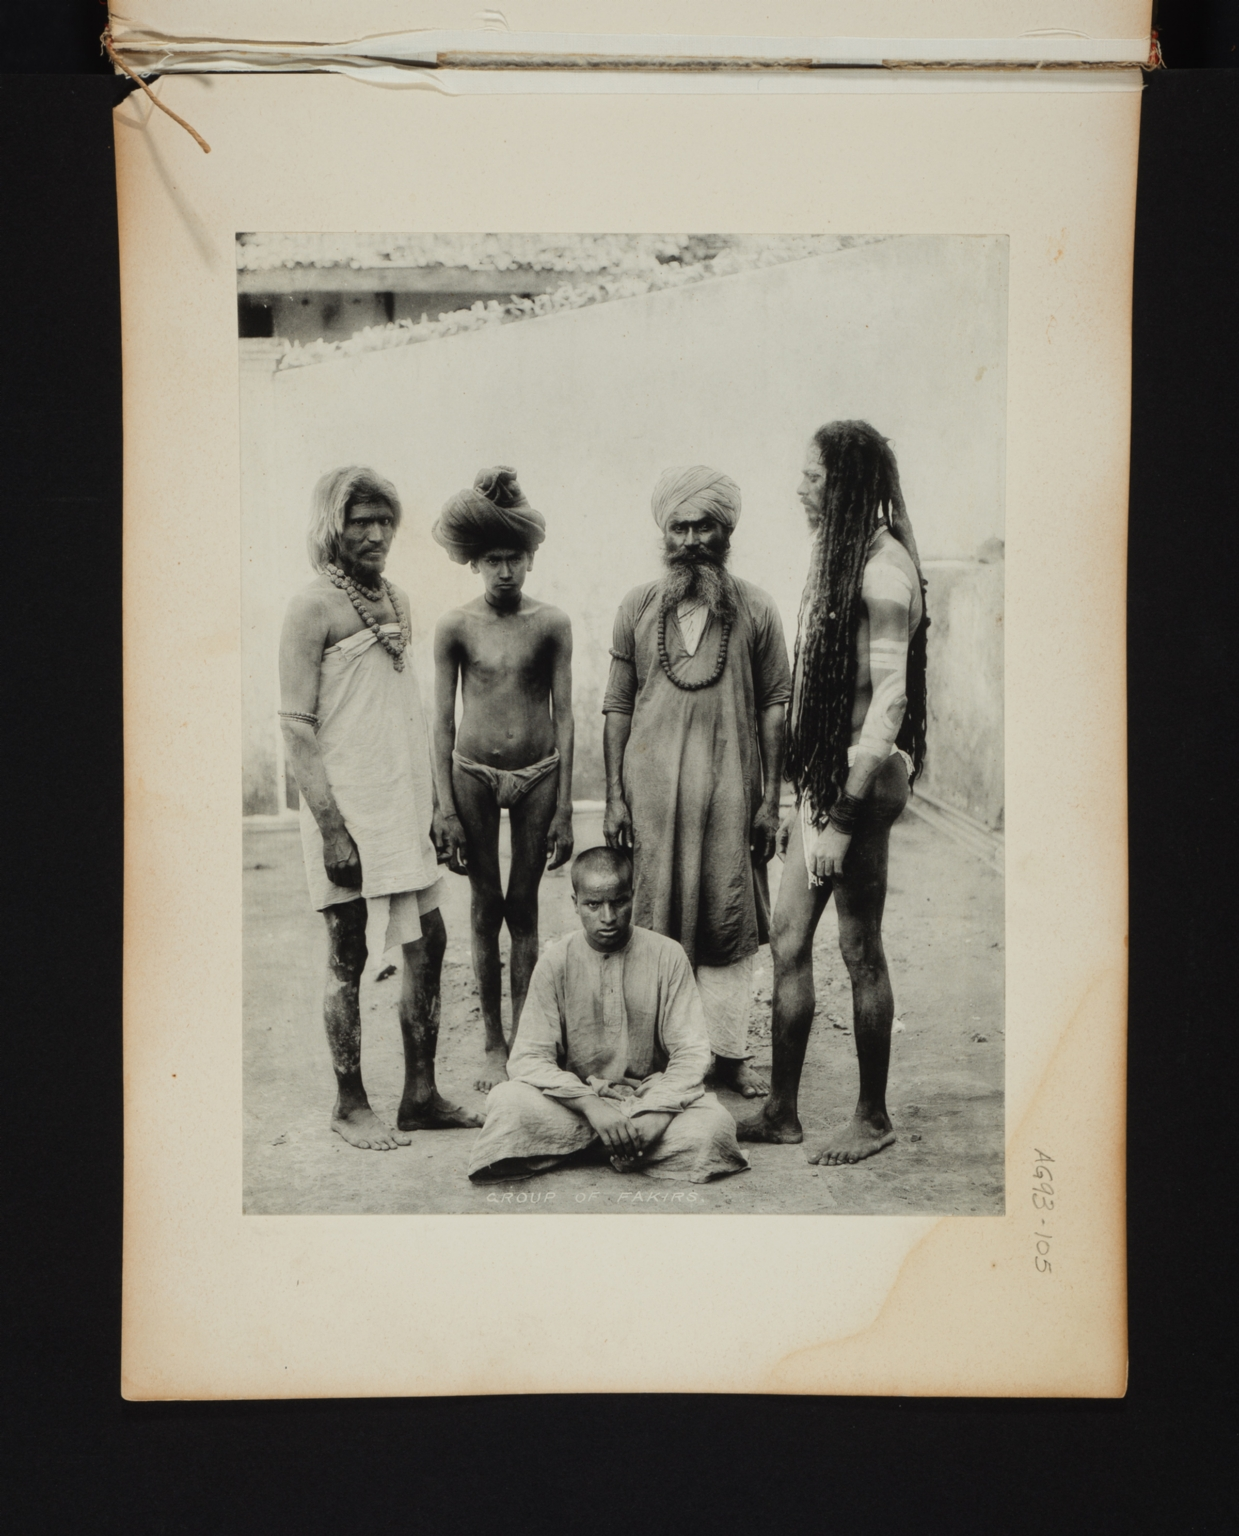 Group of Fakirs in India.